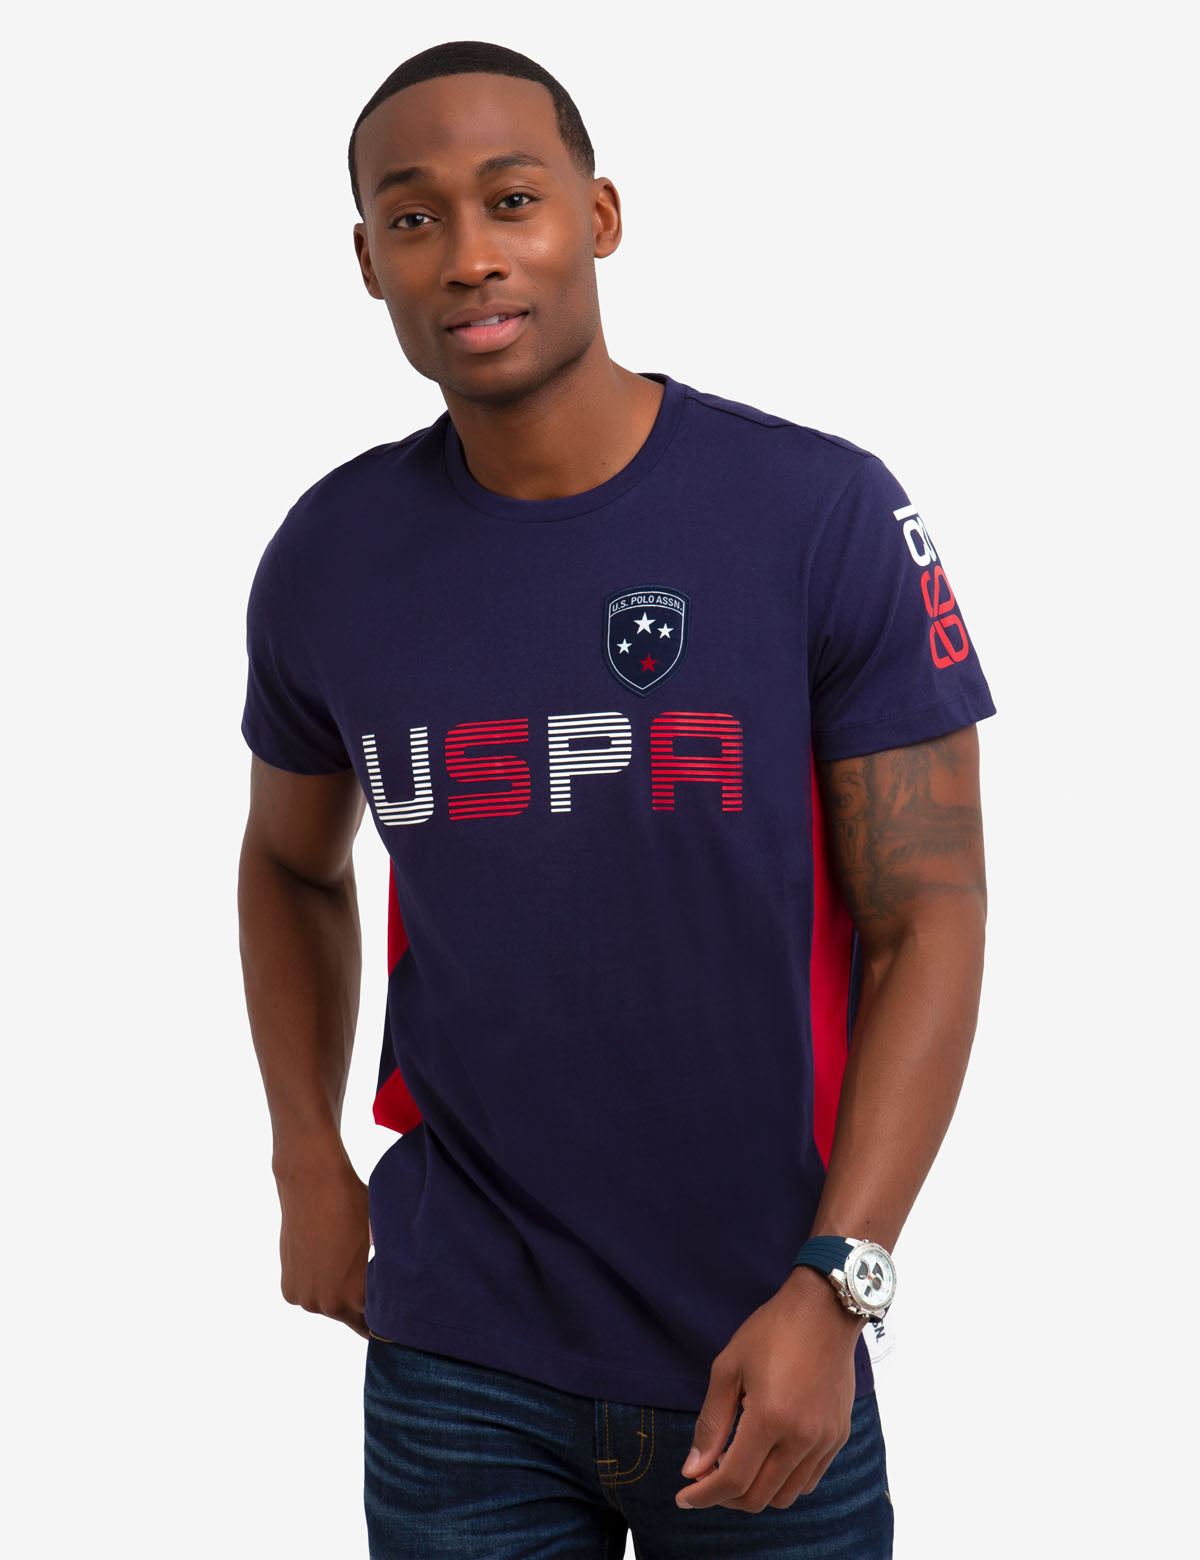 CREW NECK U.S. POLO ASSN. PATCH T-SHIRT - U.S. Polo Assn.